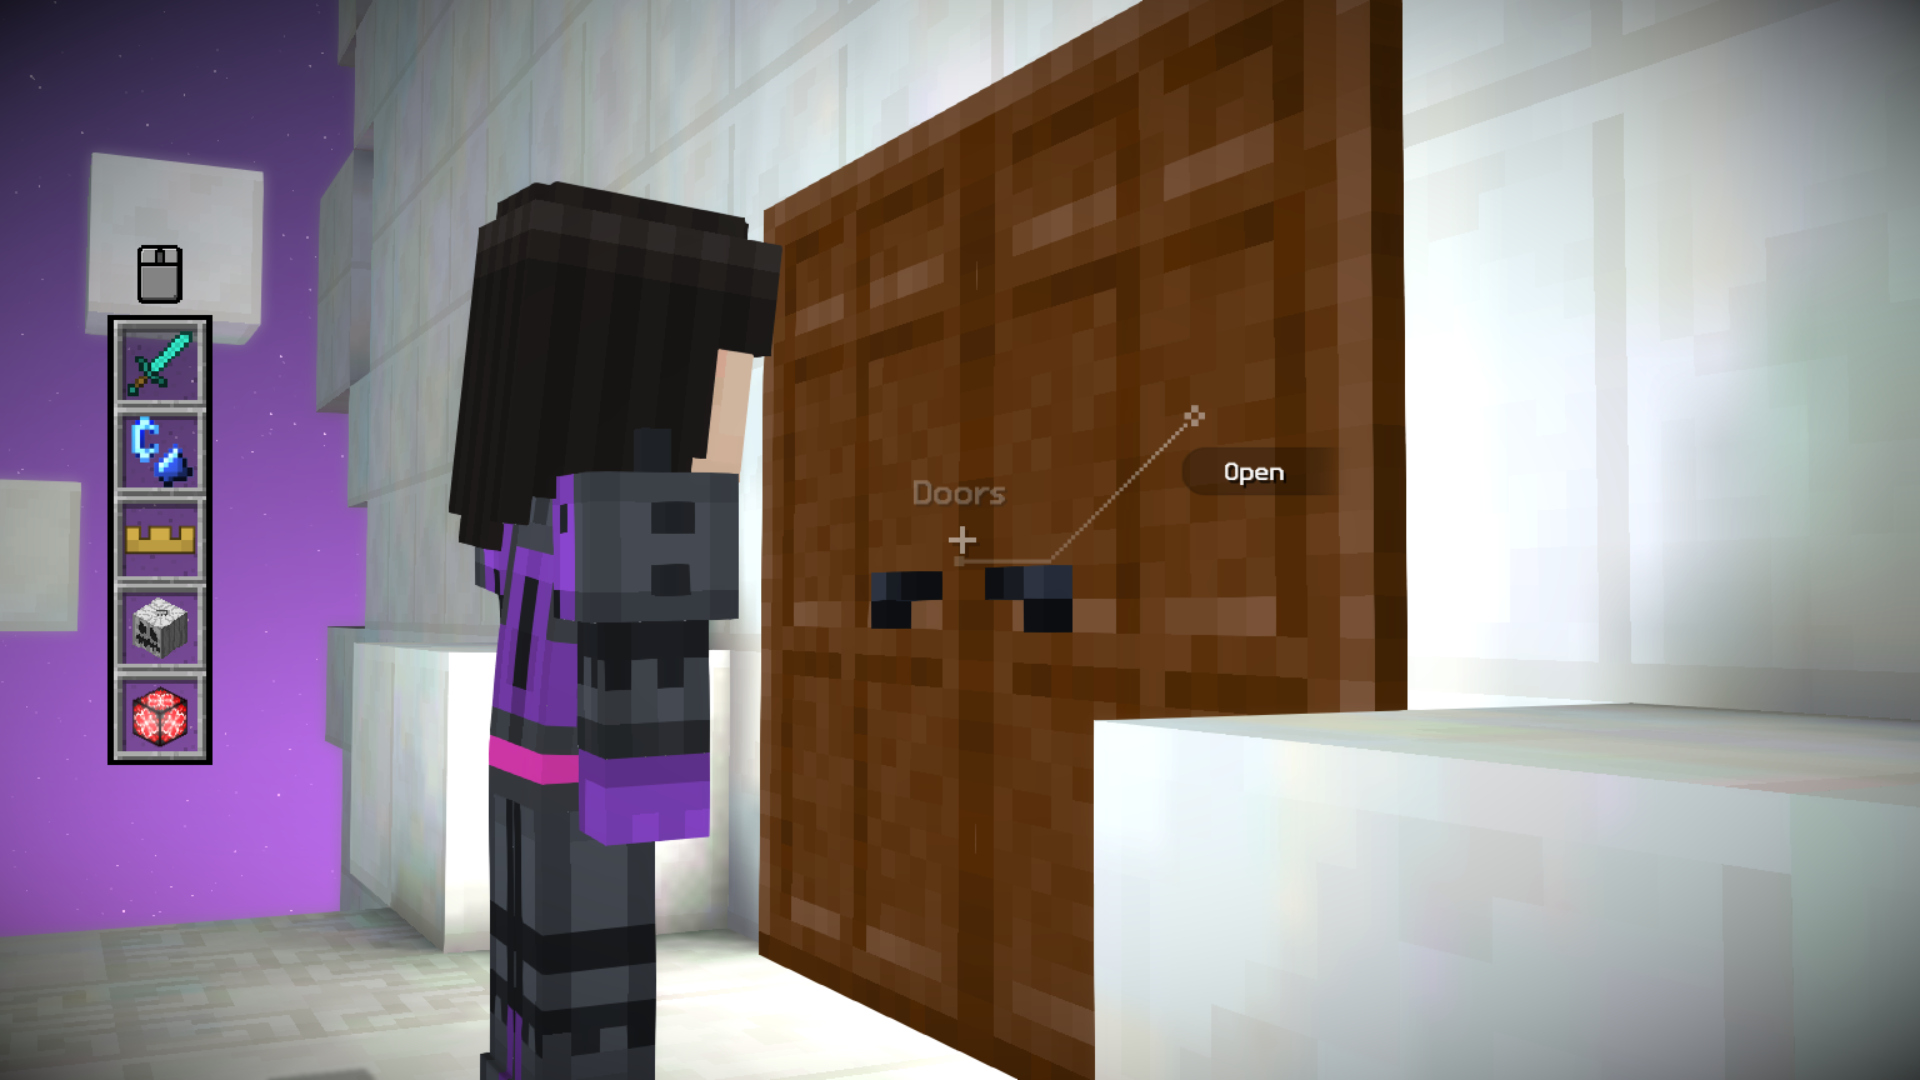 Doors.png & Image - Doors.png   Minecraft Story Mode Wiki   FANDOM powered by ...